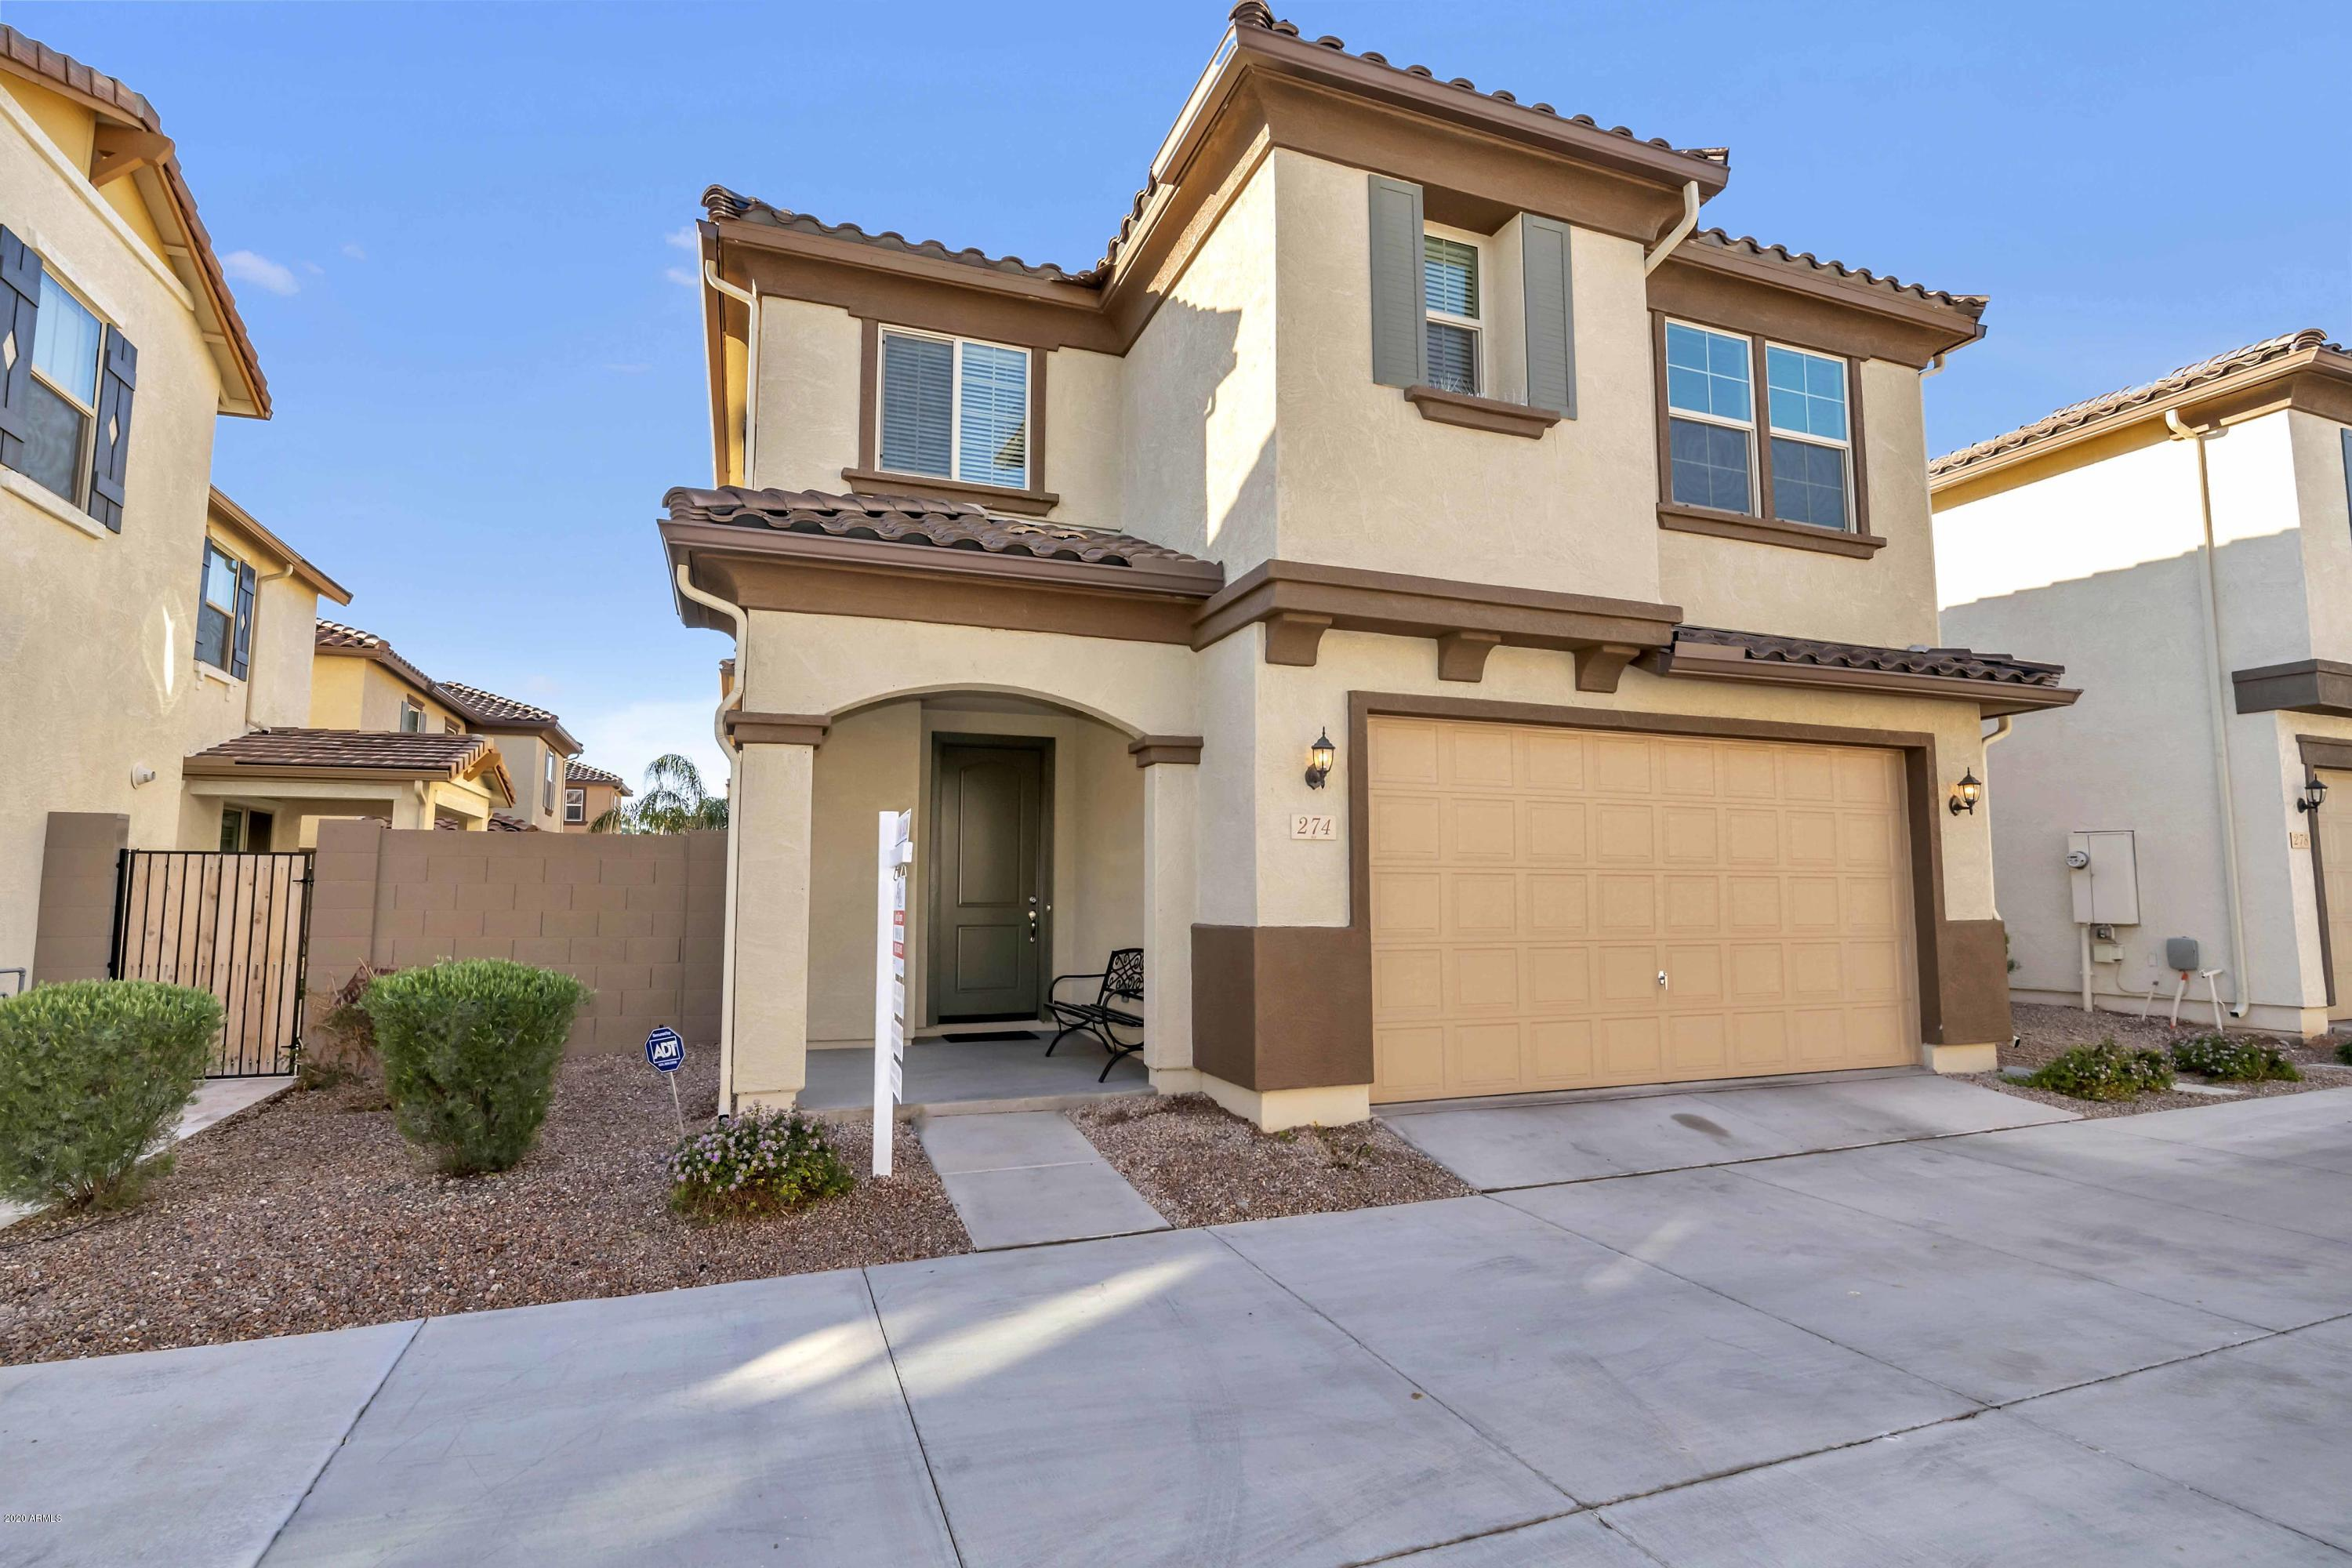 Photo of 274 N Scott Drive, Chandler, AZ 85225